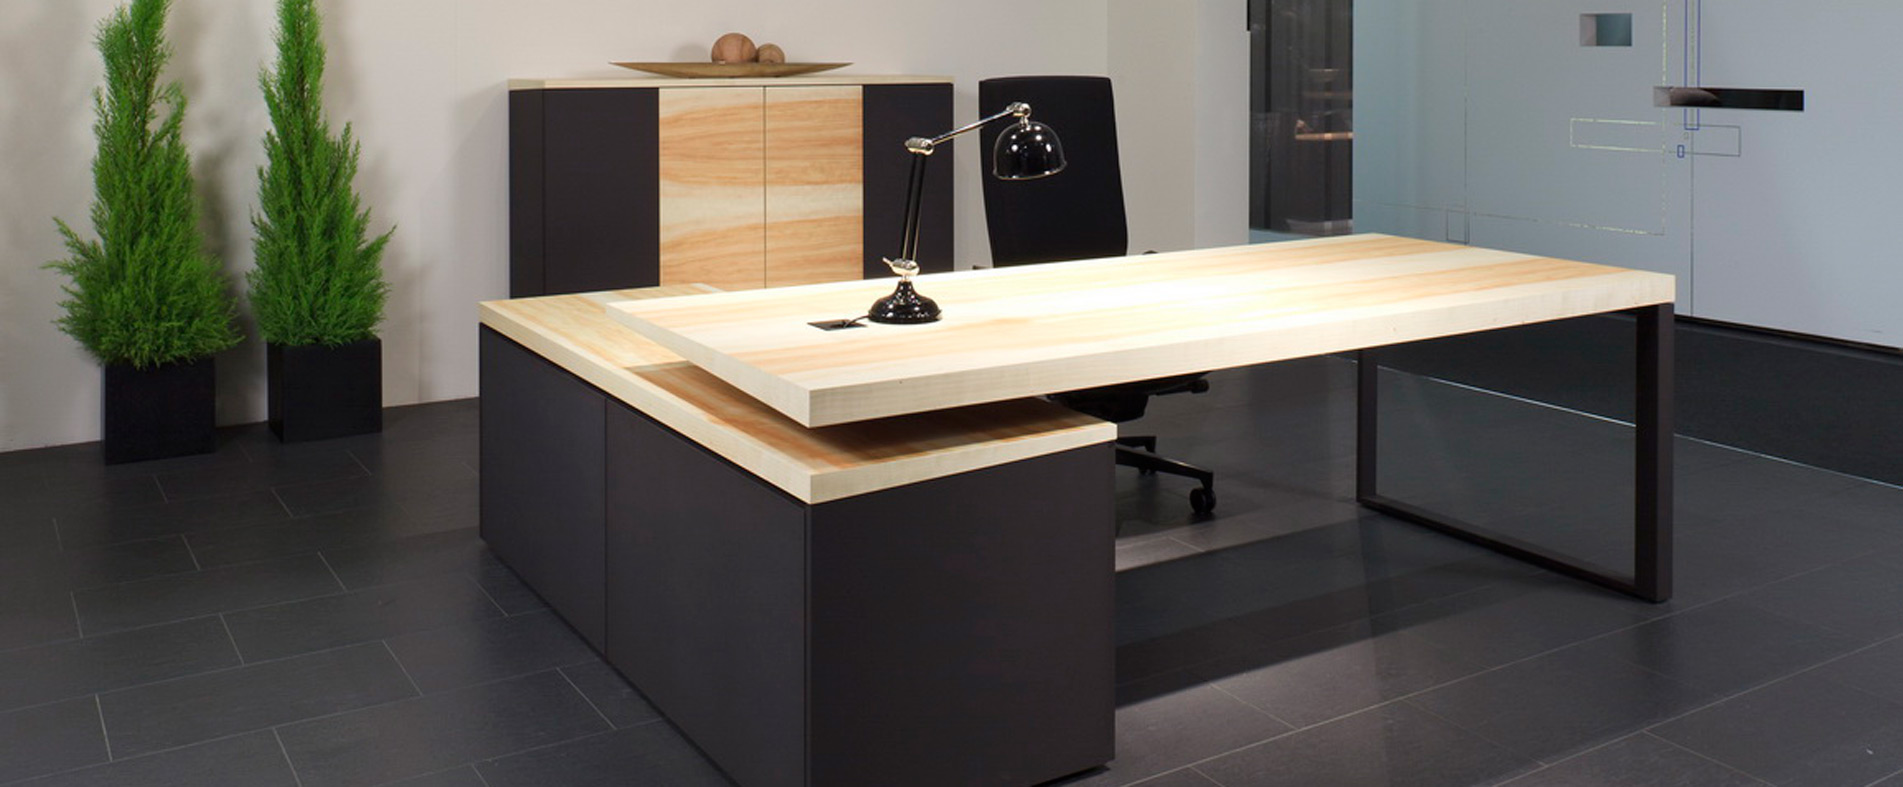 Vetur Winkelkombination mit Highboard